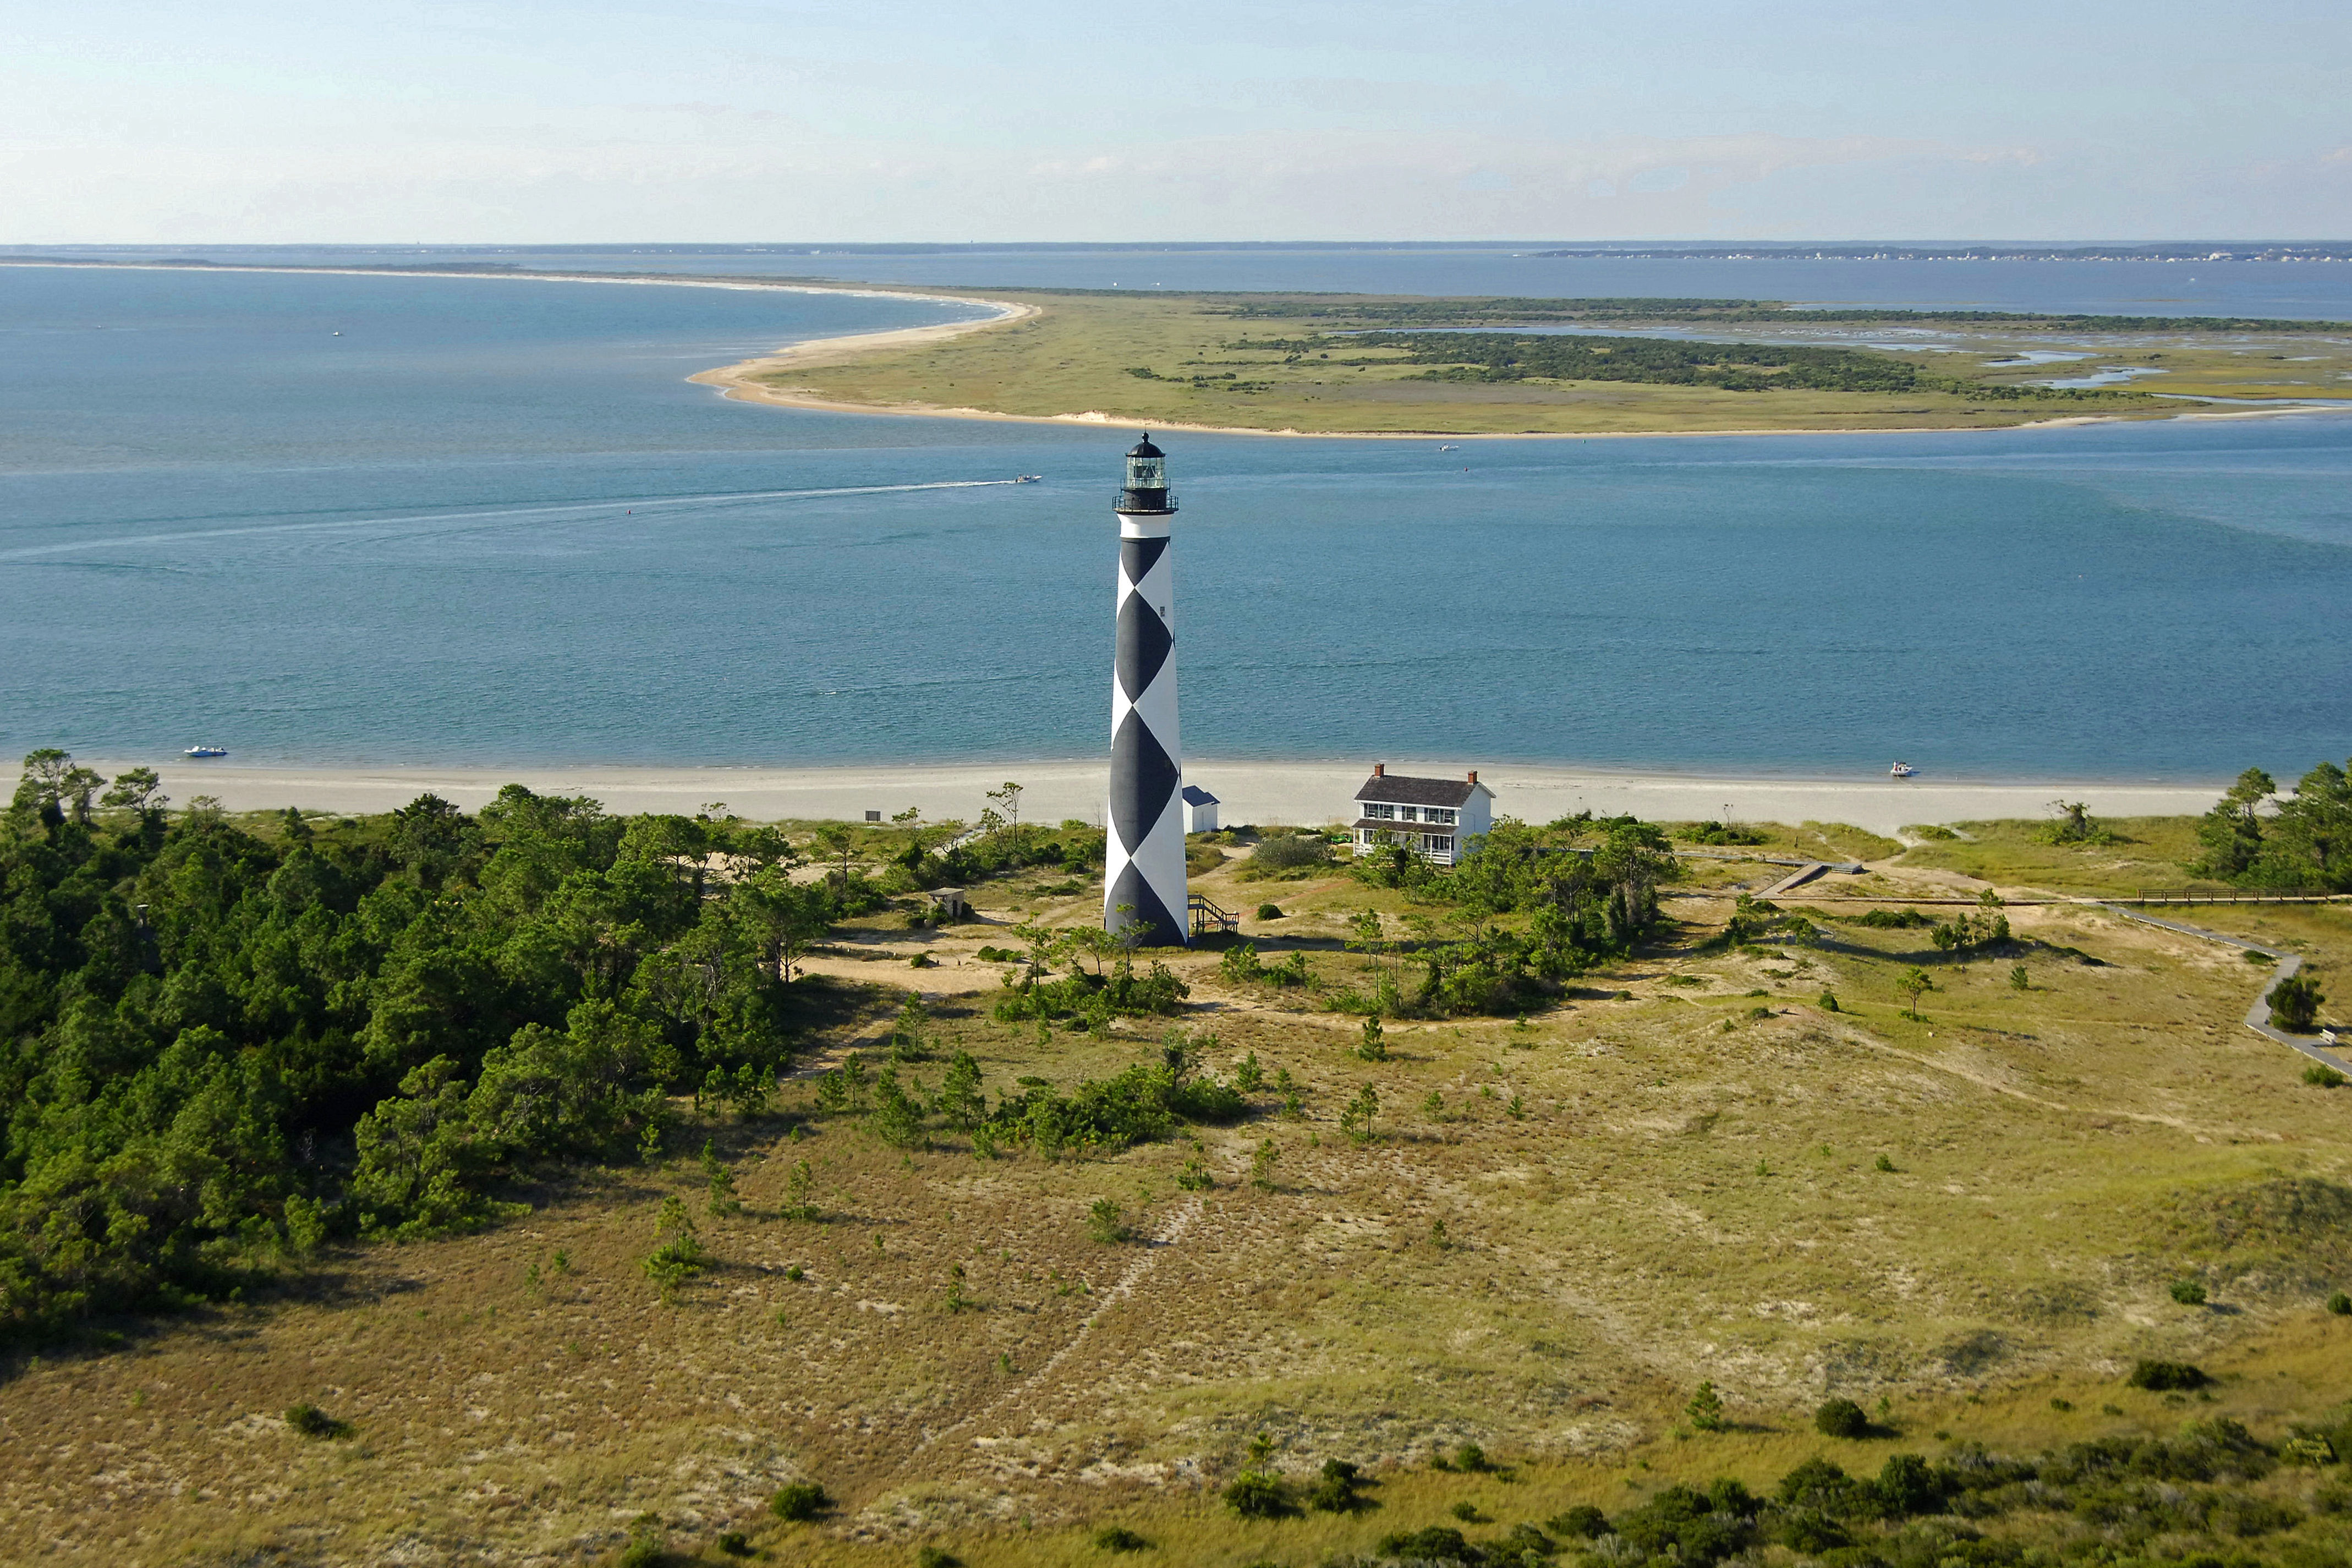 Cape Lookout Lighthouse in Harkers Island, NC, United States ... on cape lookout lighthouse, cape lookout at night, cape lookout ferry harkers island, cape lookout beach camping,